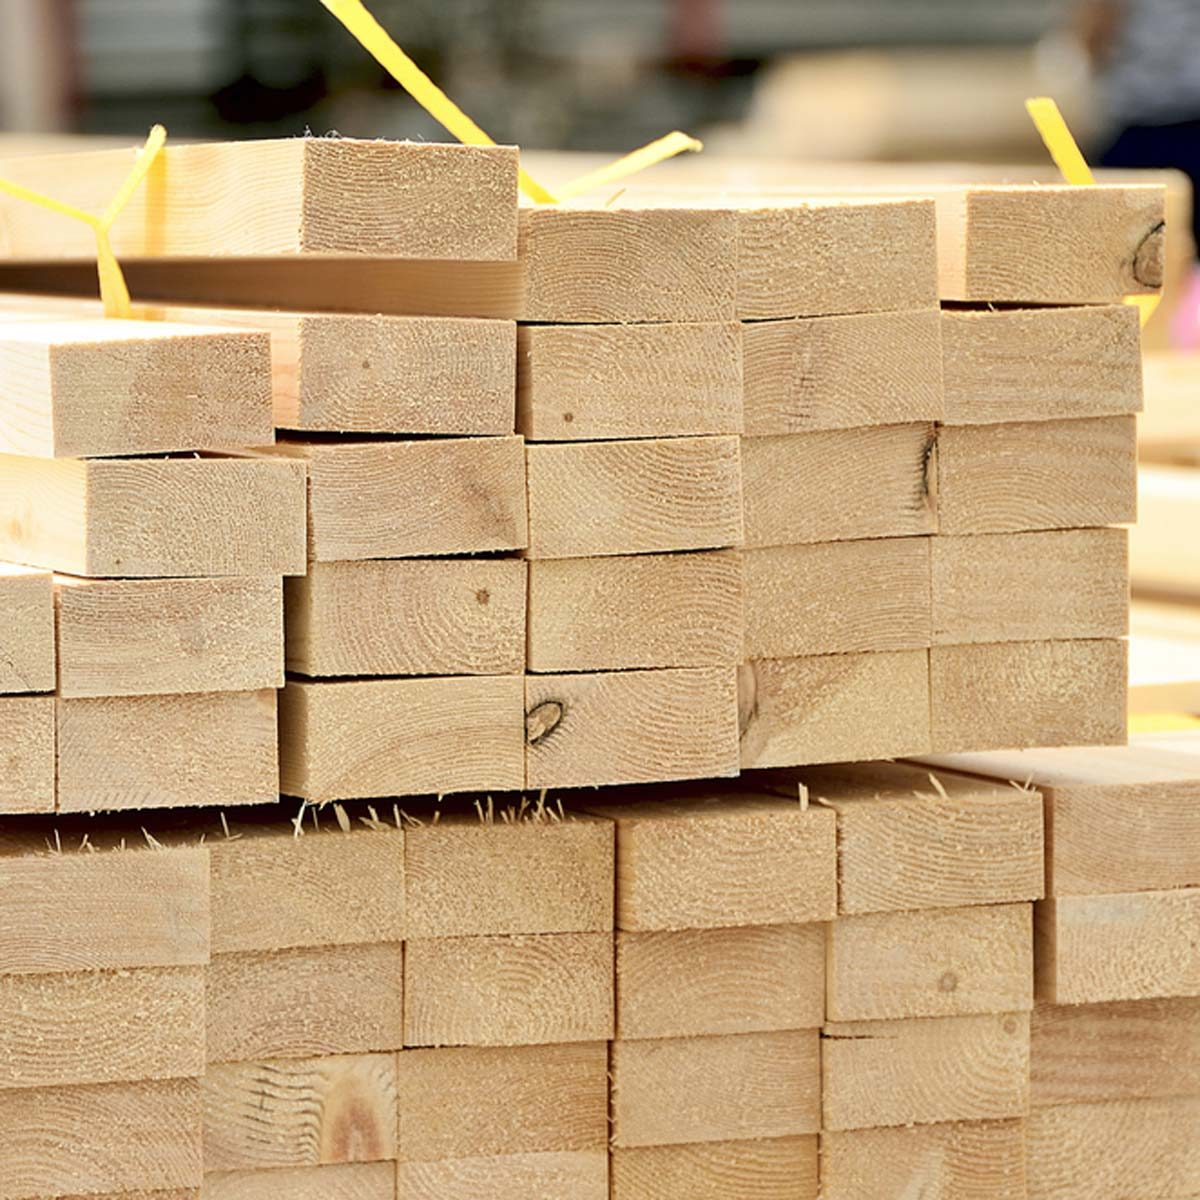 56 brilliant woodworking tips for beginners | the family